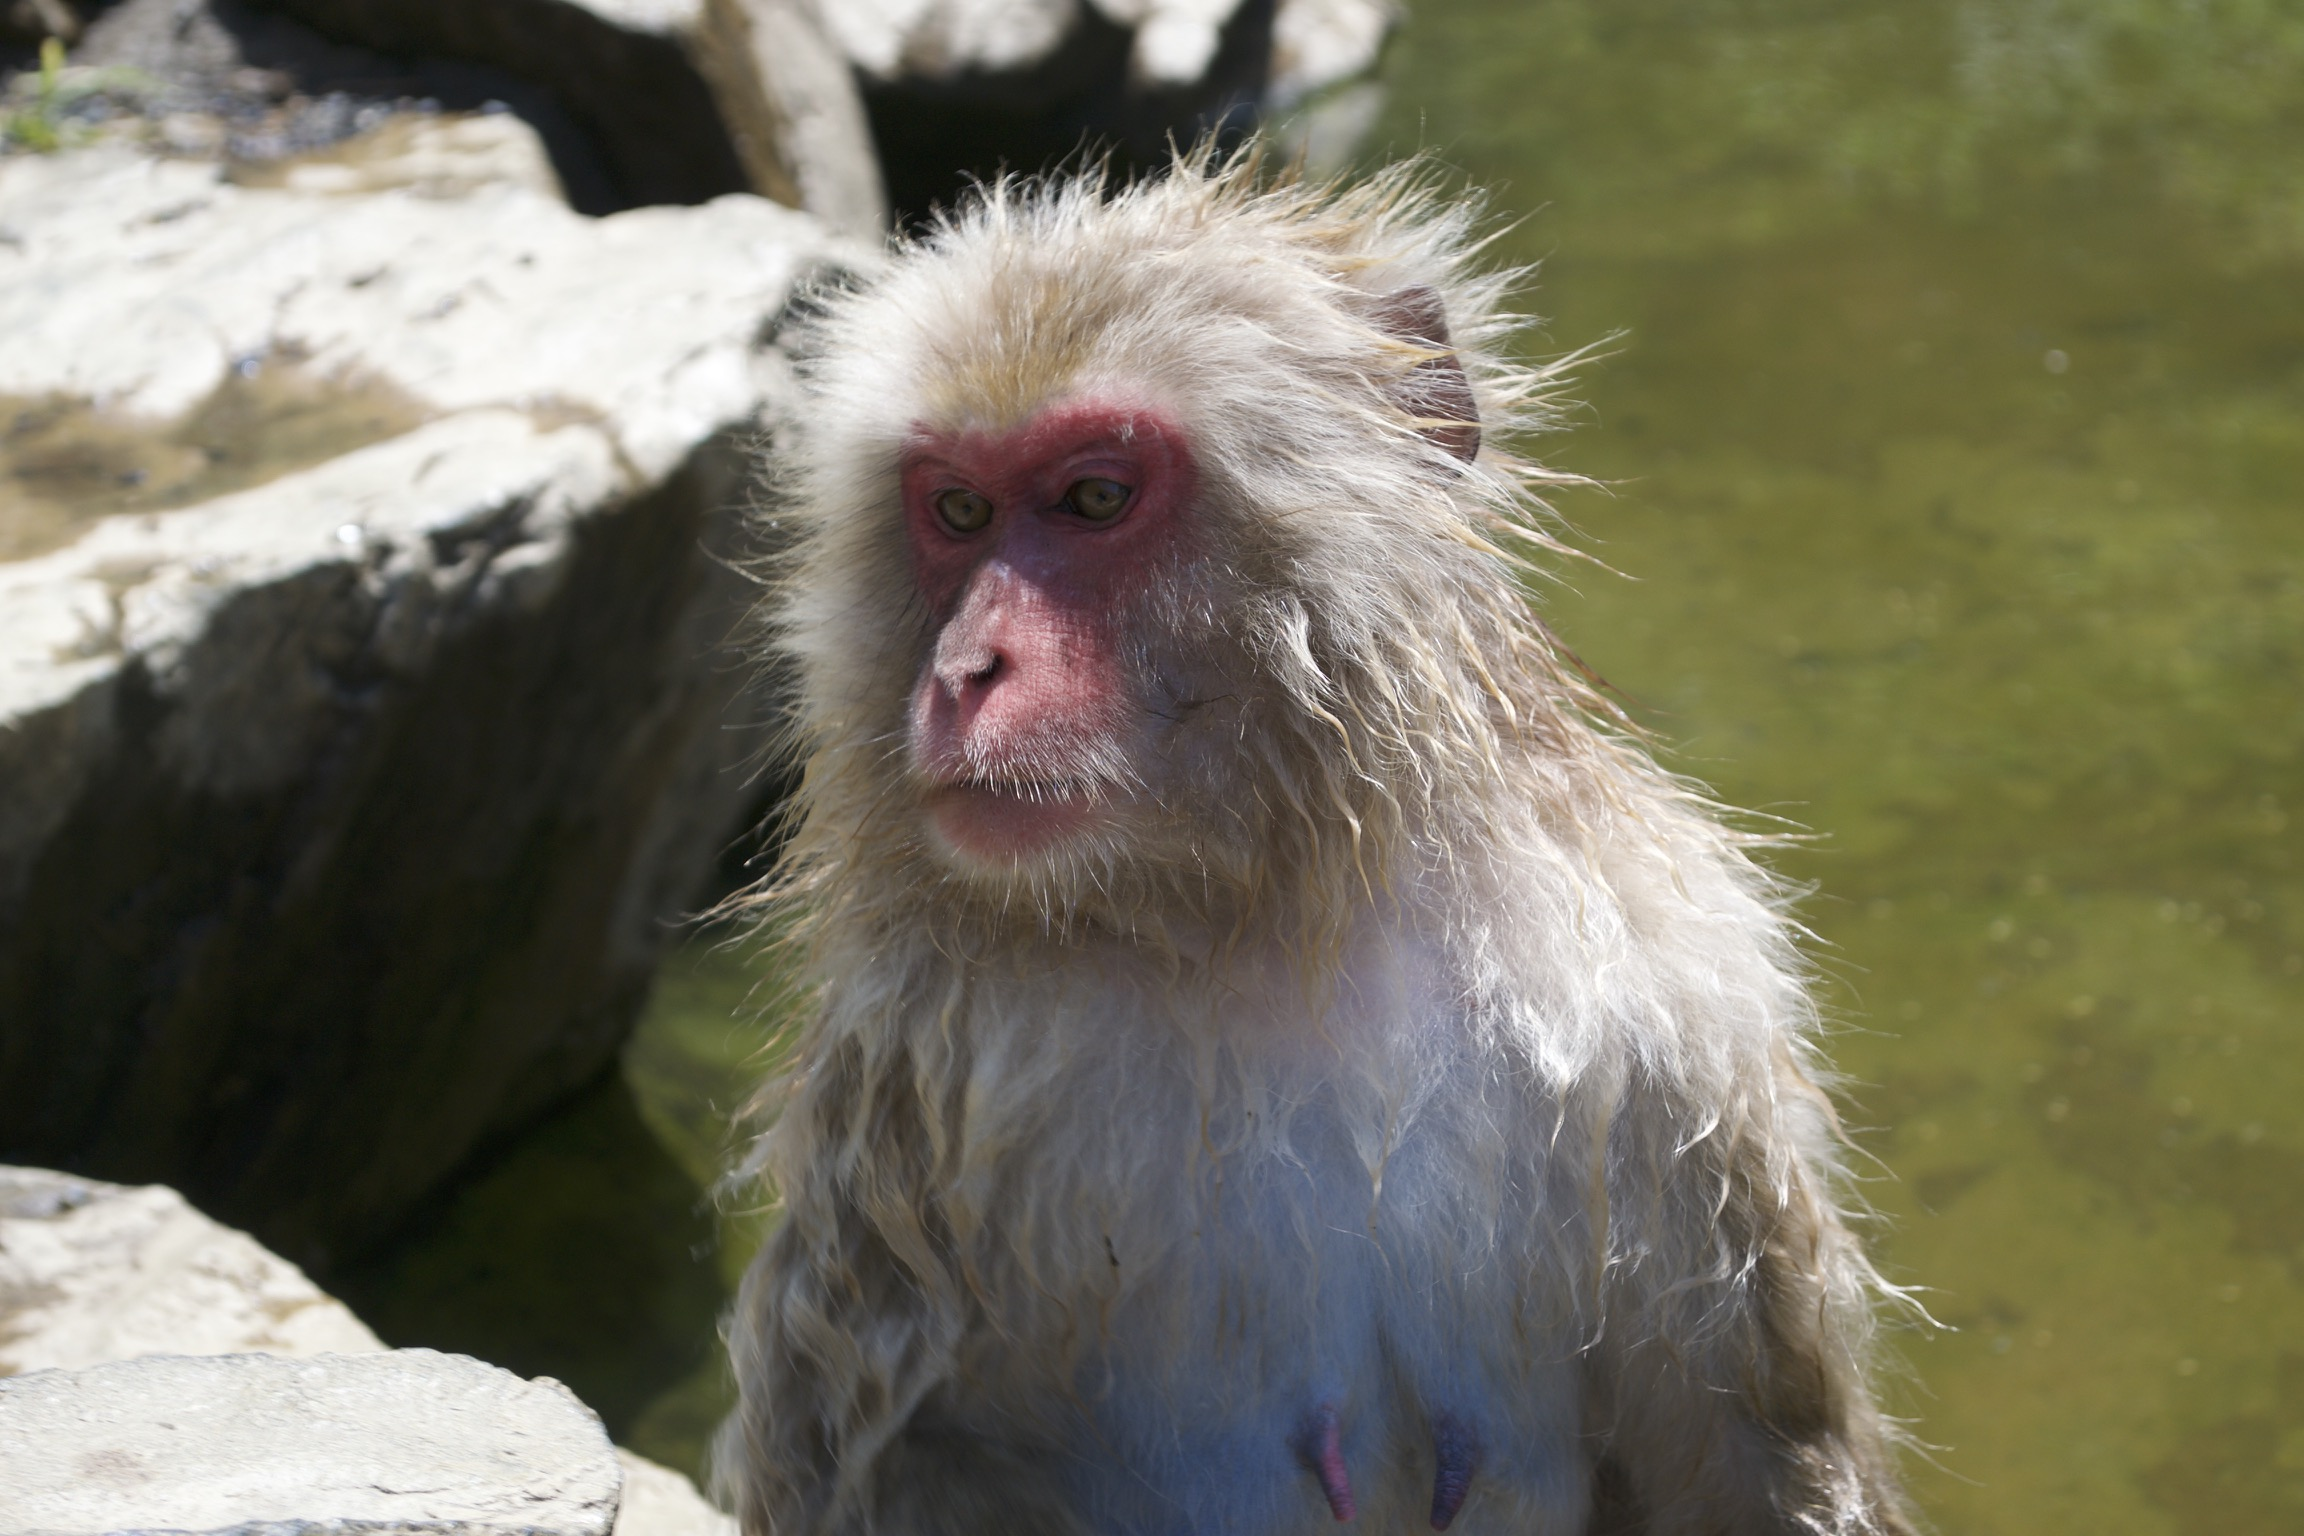 A snow monkey's wet fur sticks out.